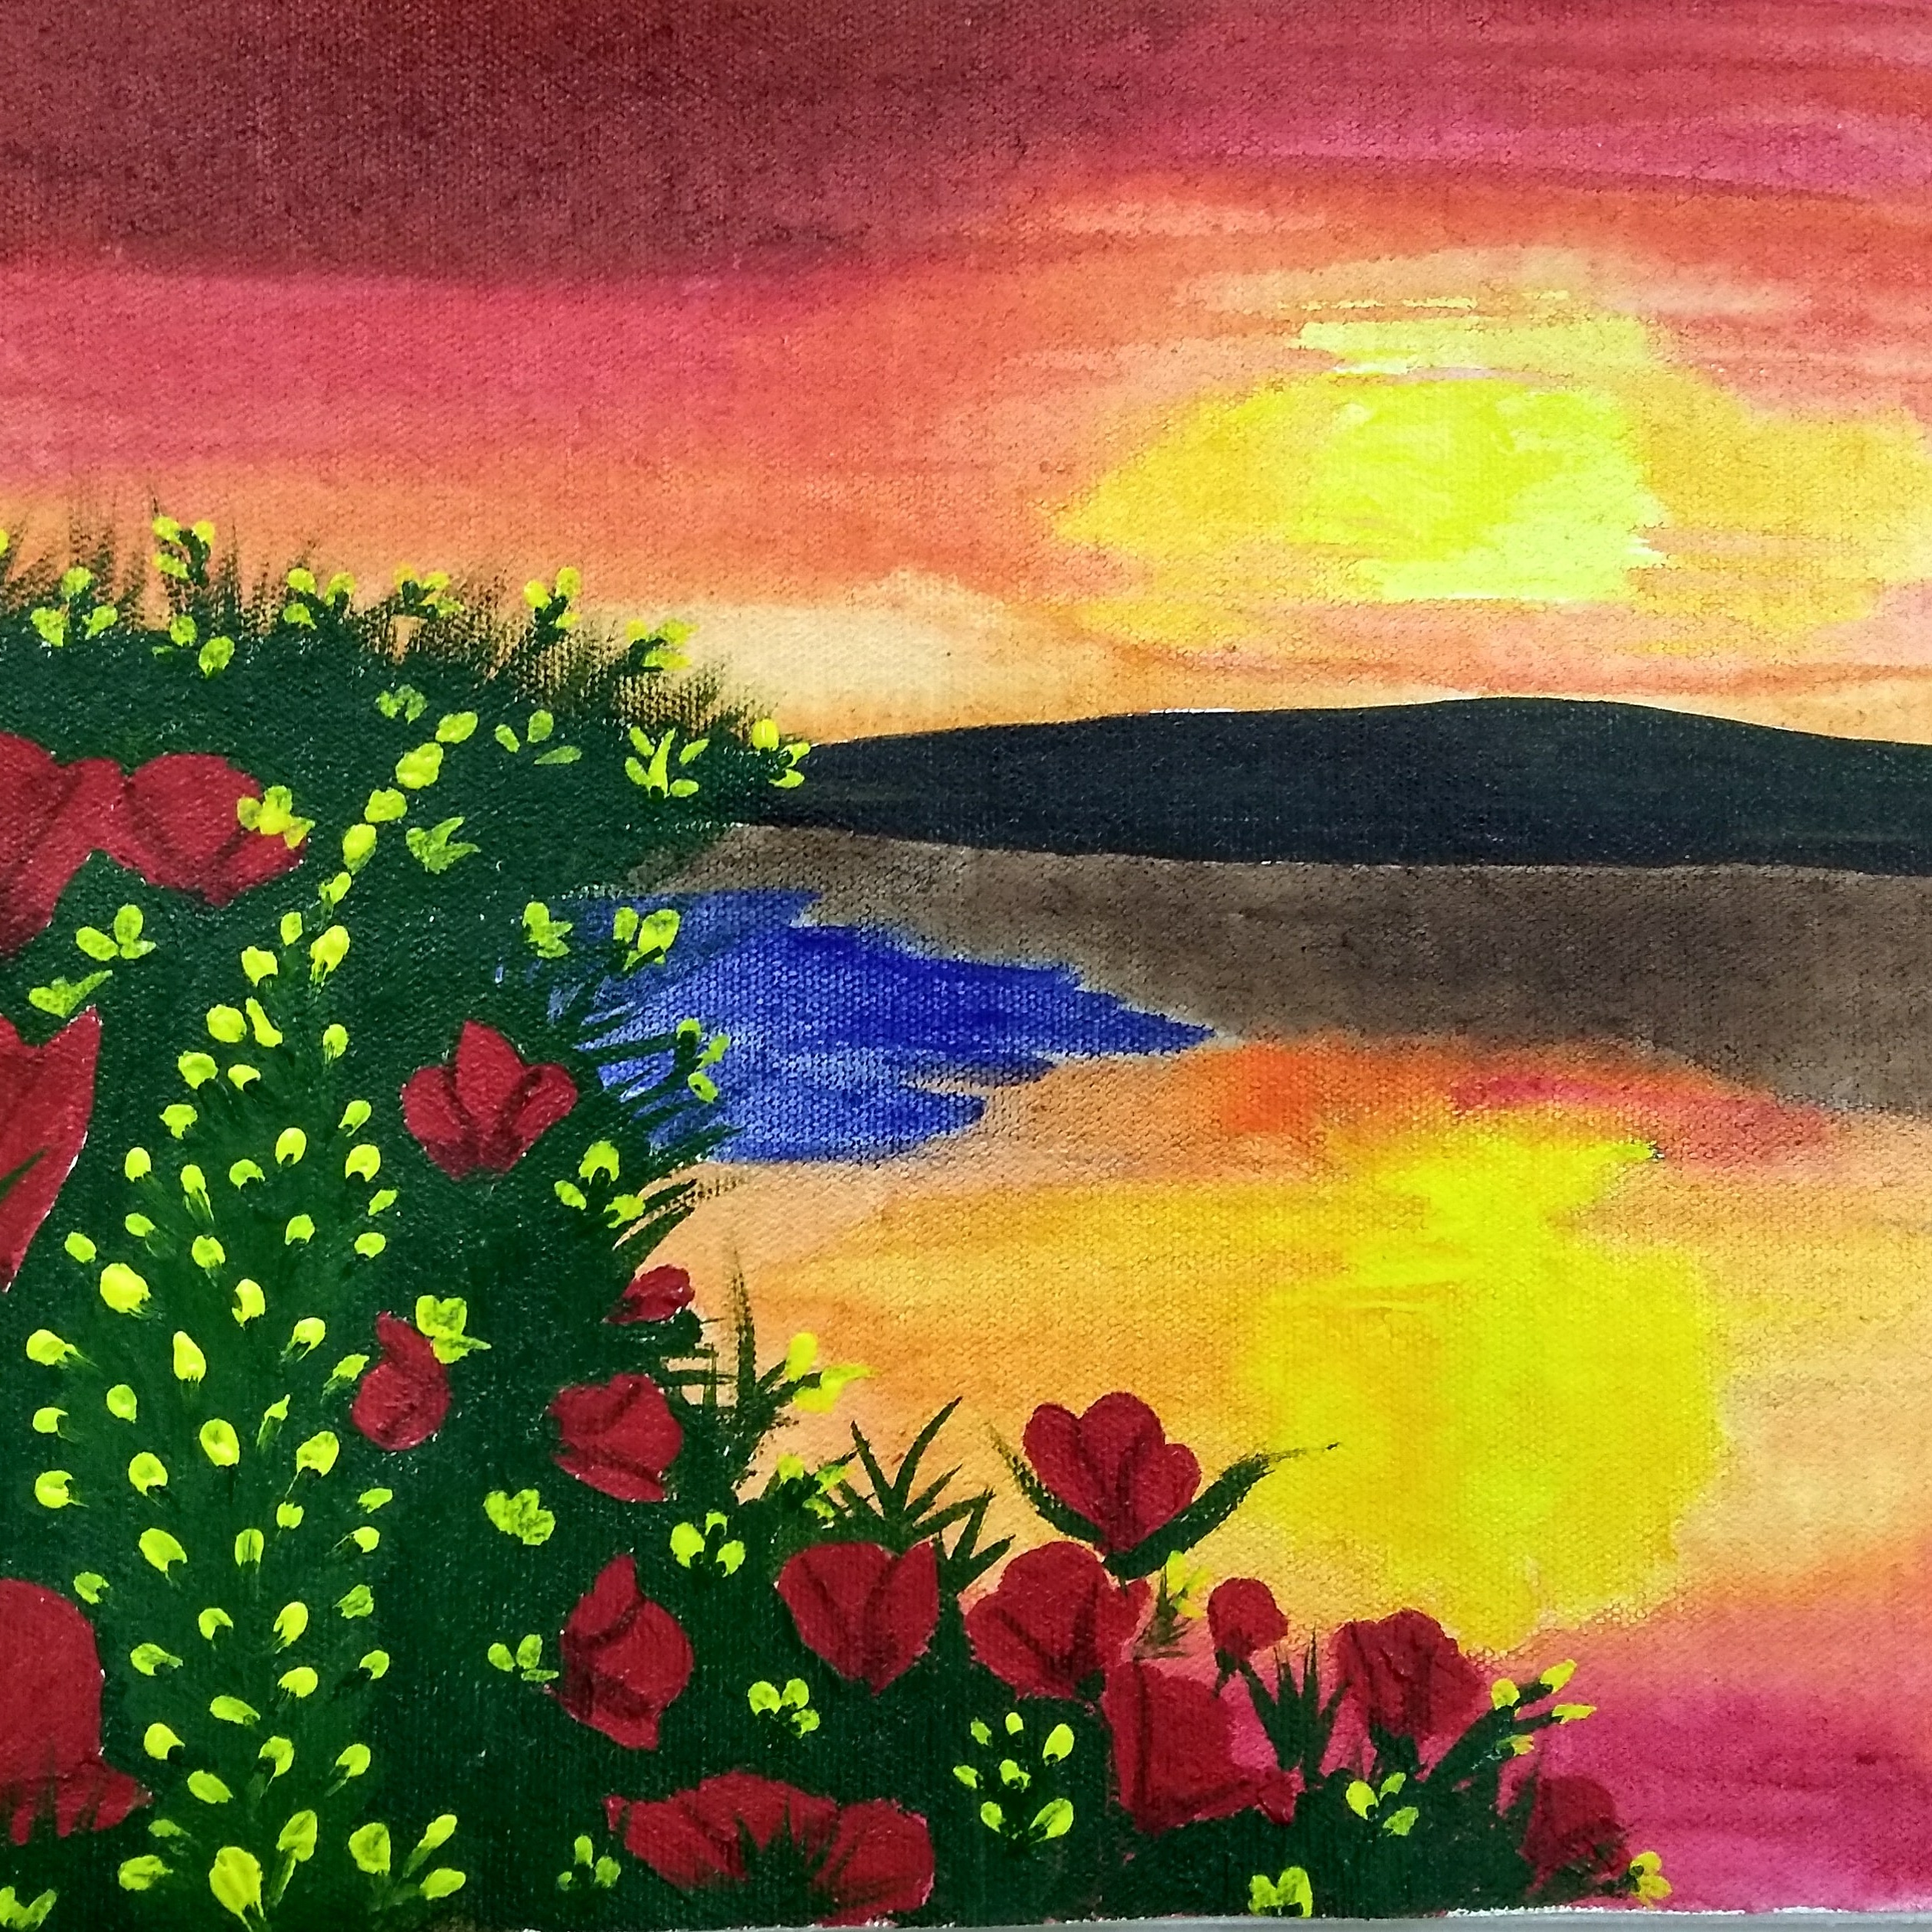 Evening Scenery Fine Art by Preet Dedhia